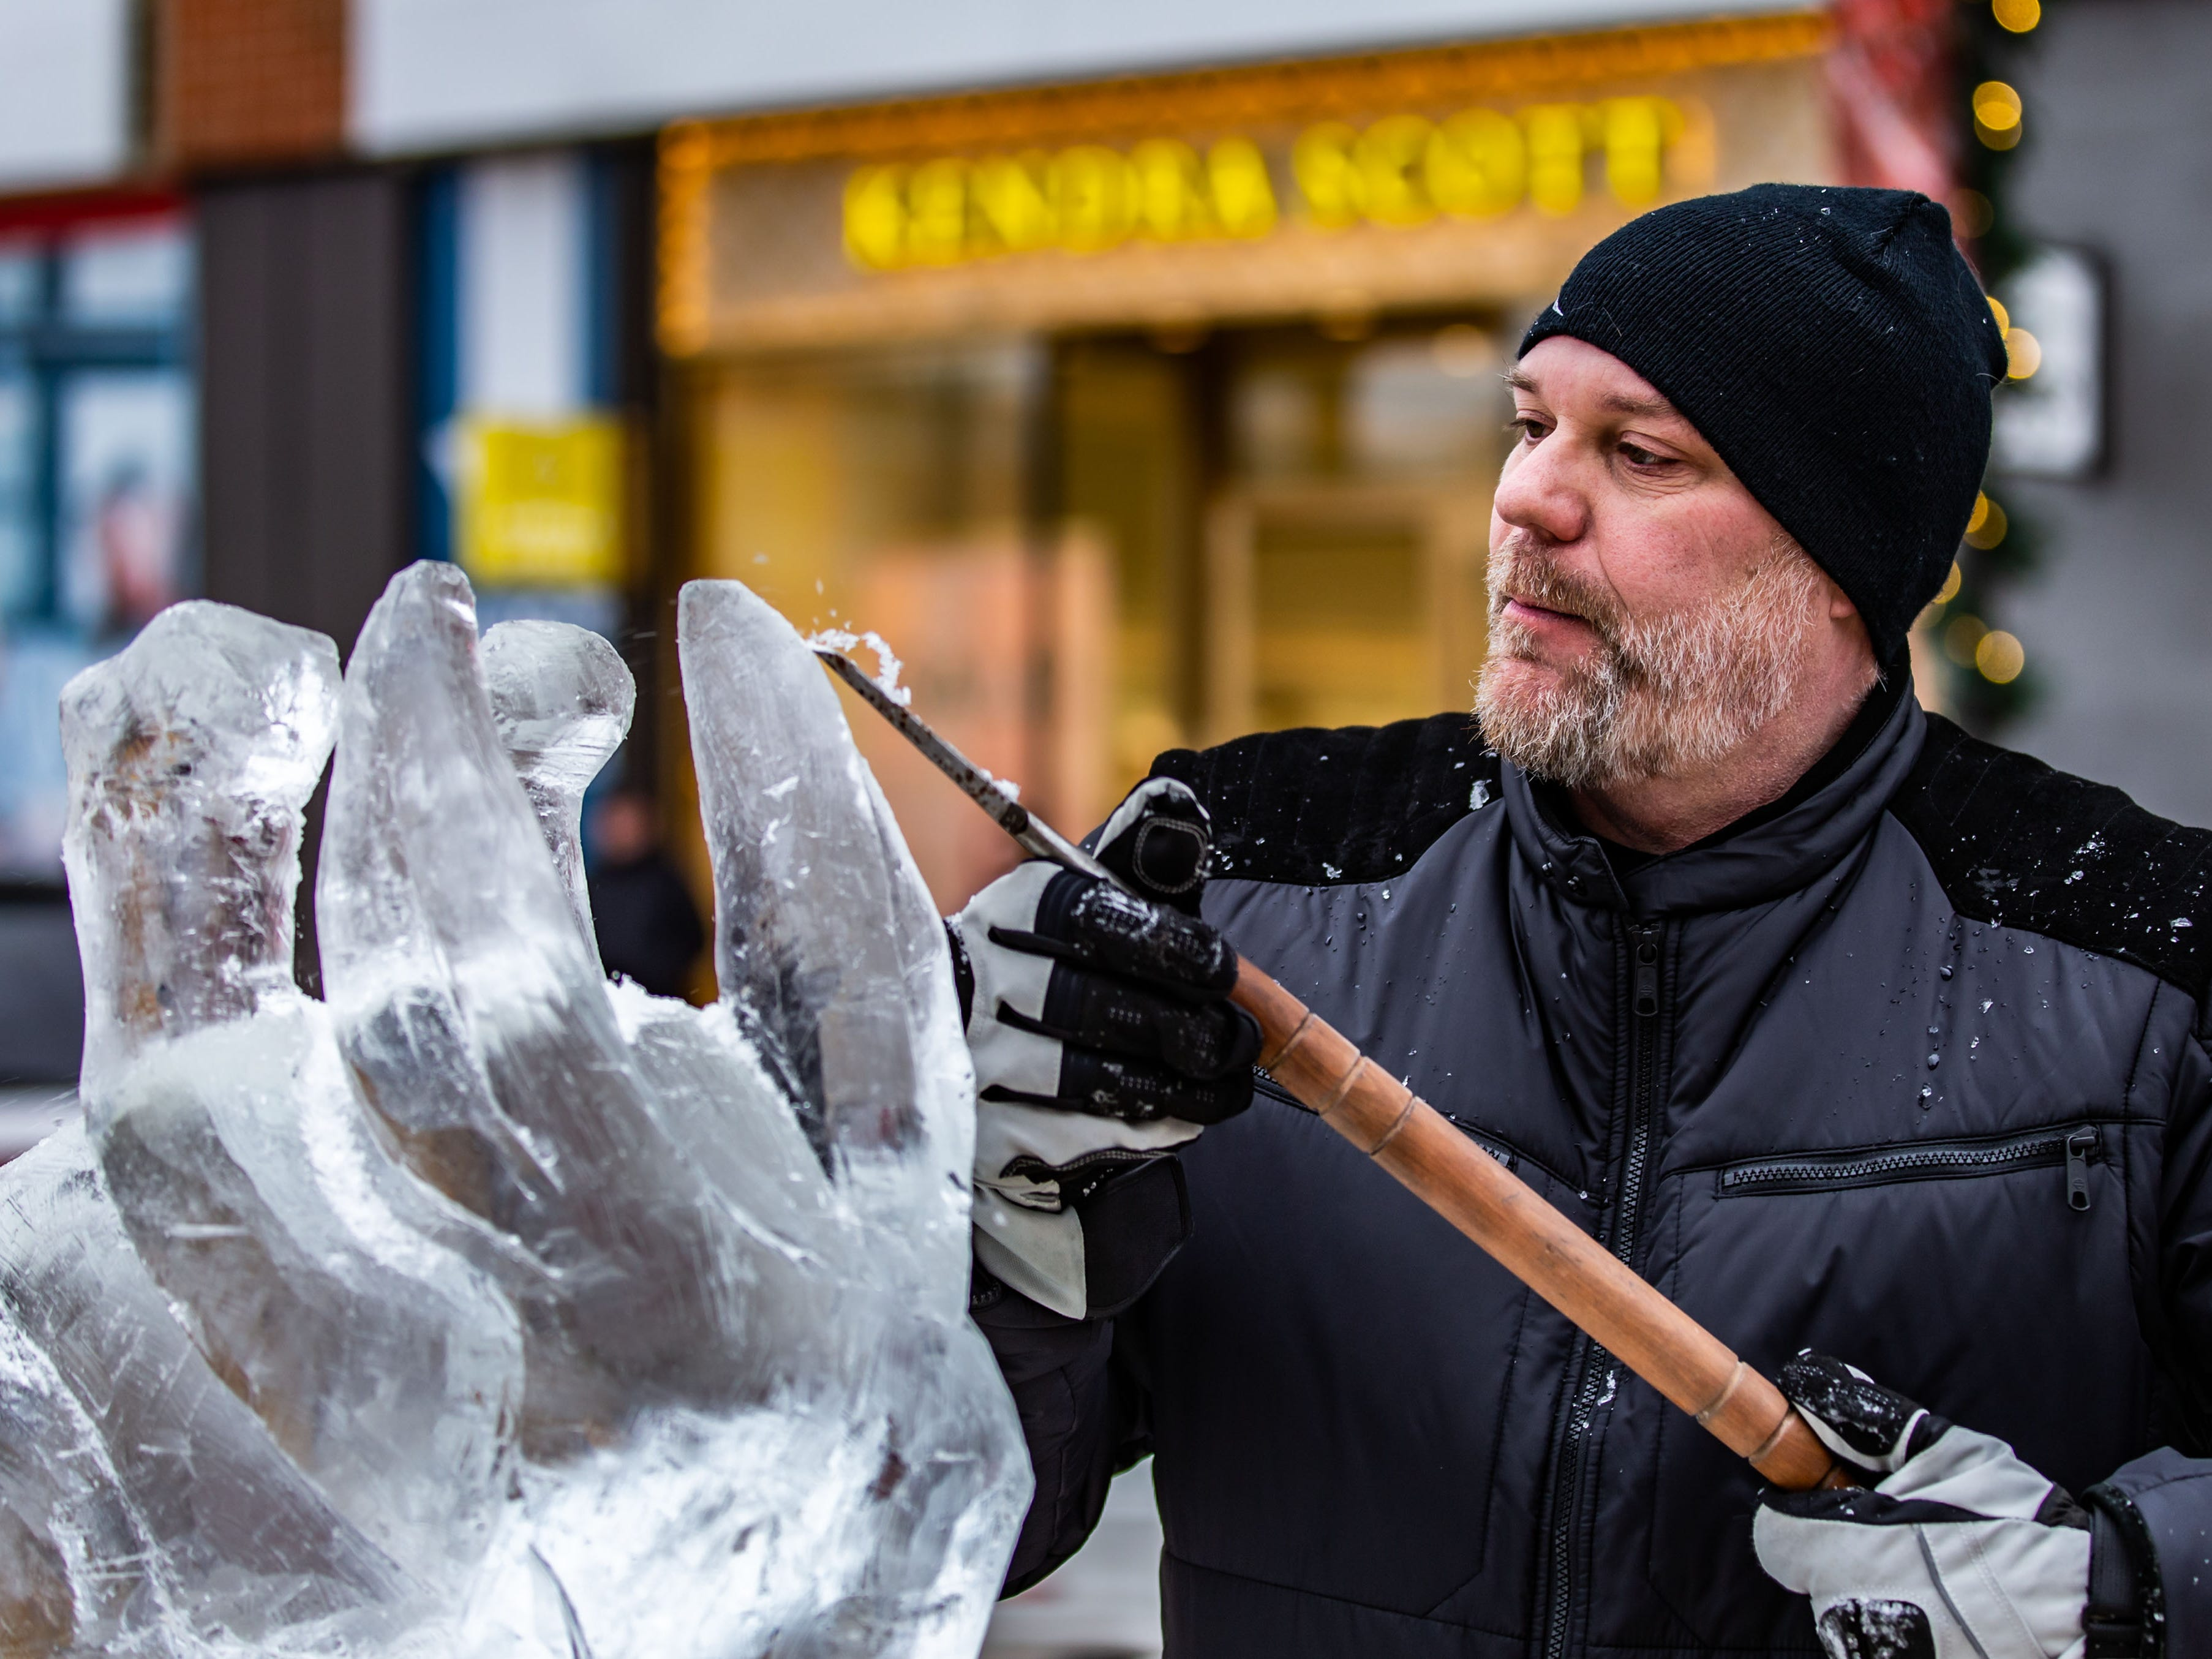 Neal Vogt of Waukesha competes in the Wisconsin State Ice Carving Championships held during Winter Fest at The Corners of Brookfield on Saturday, Jan. 12, 2019.